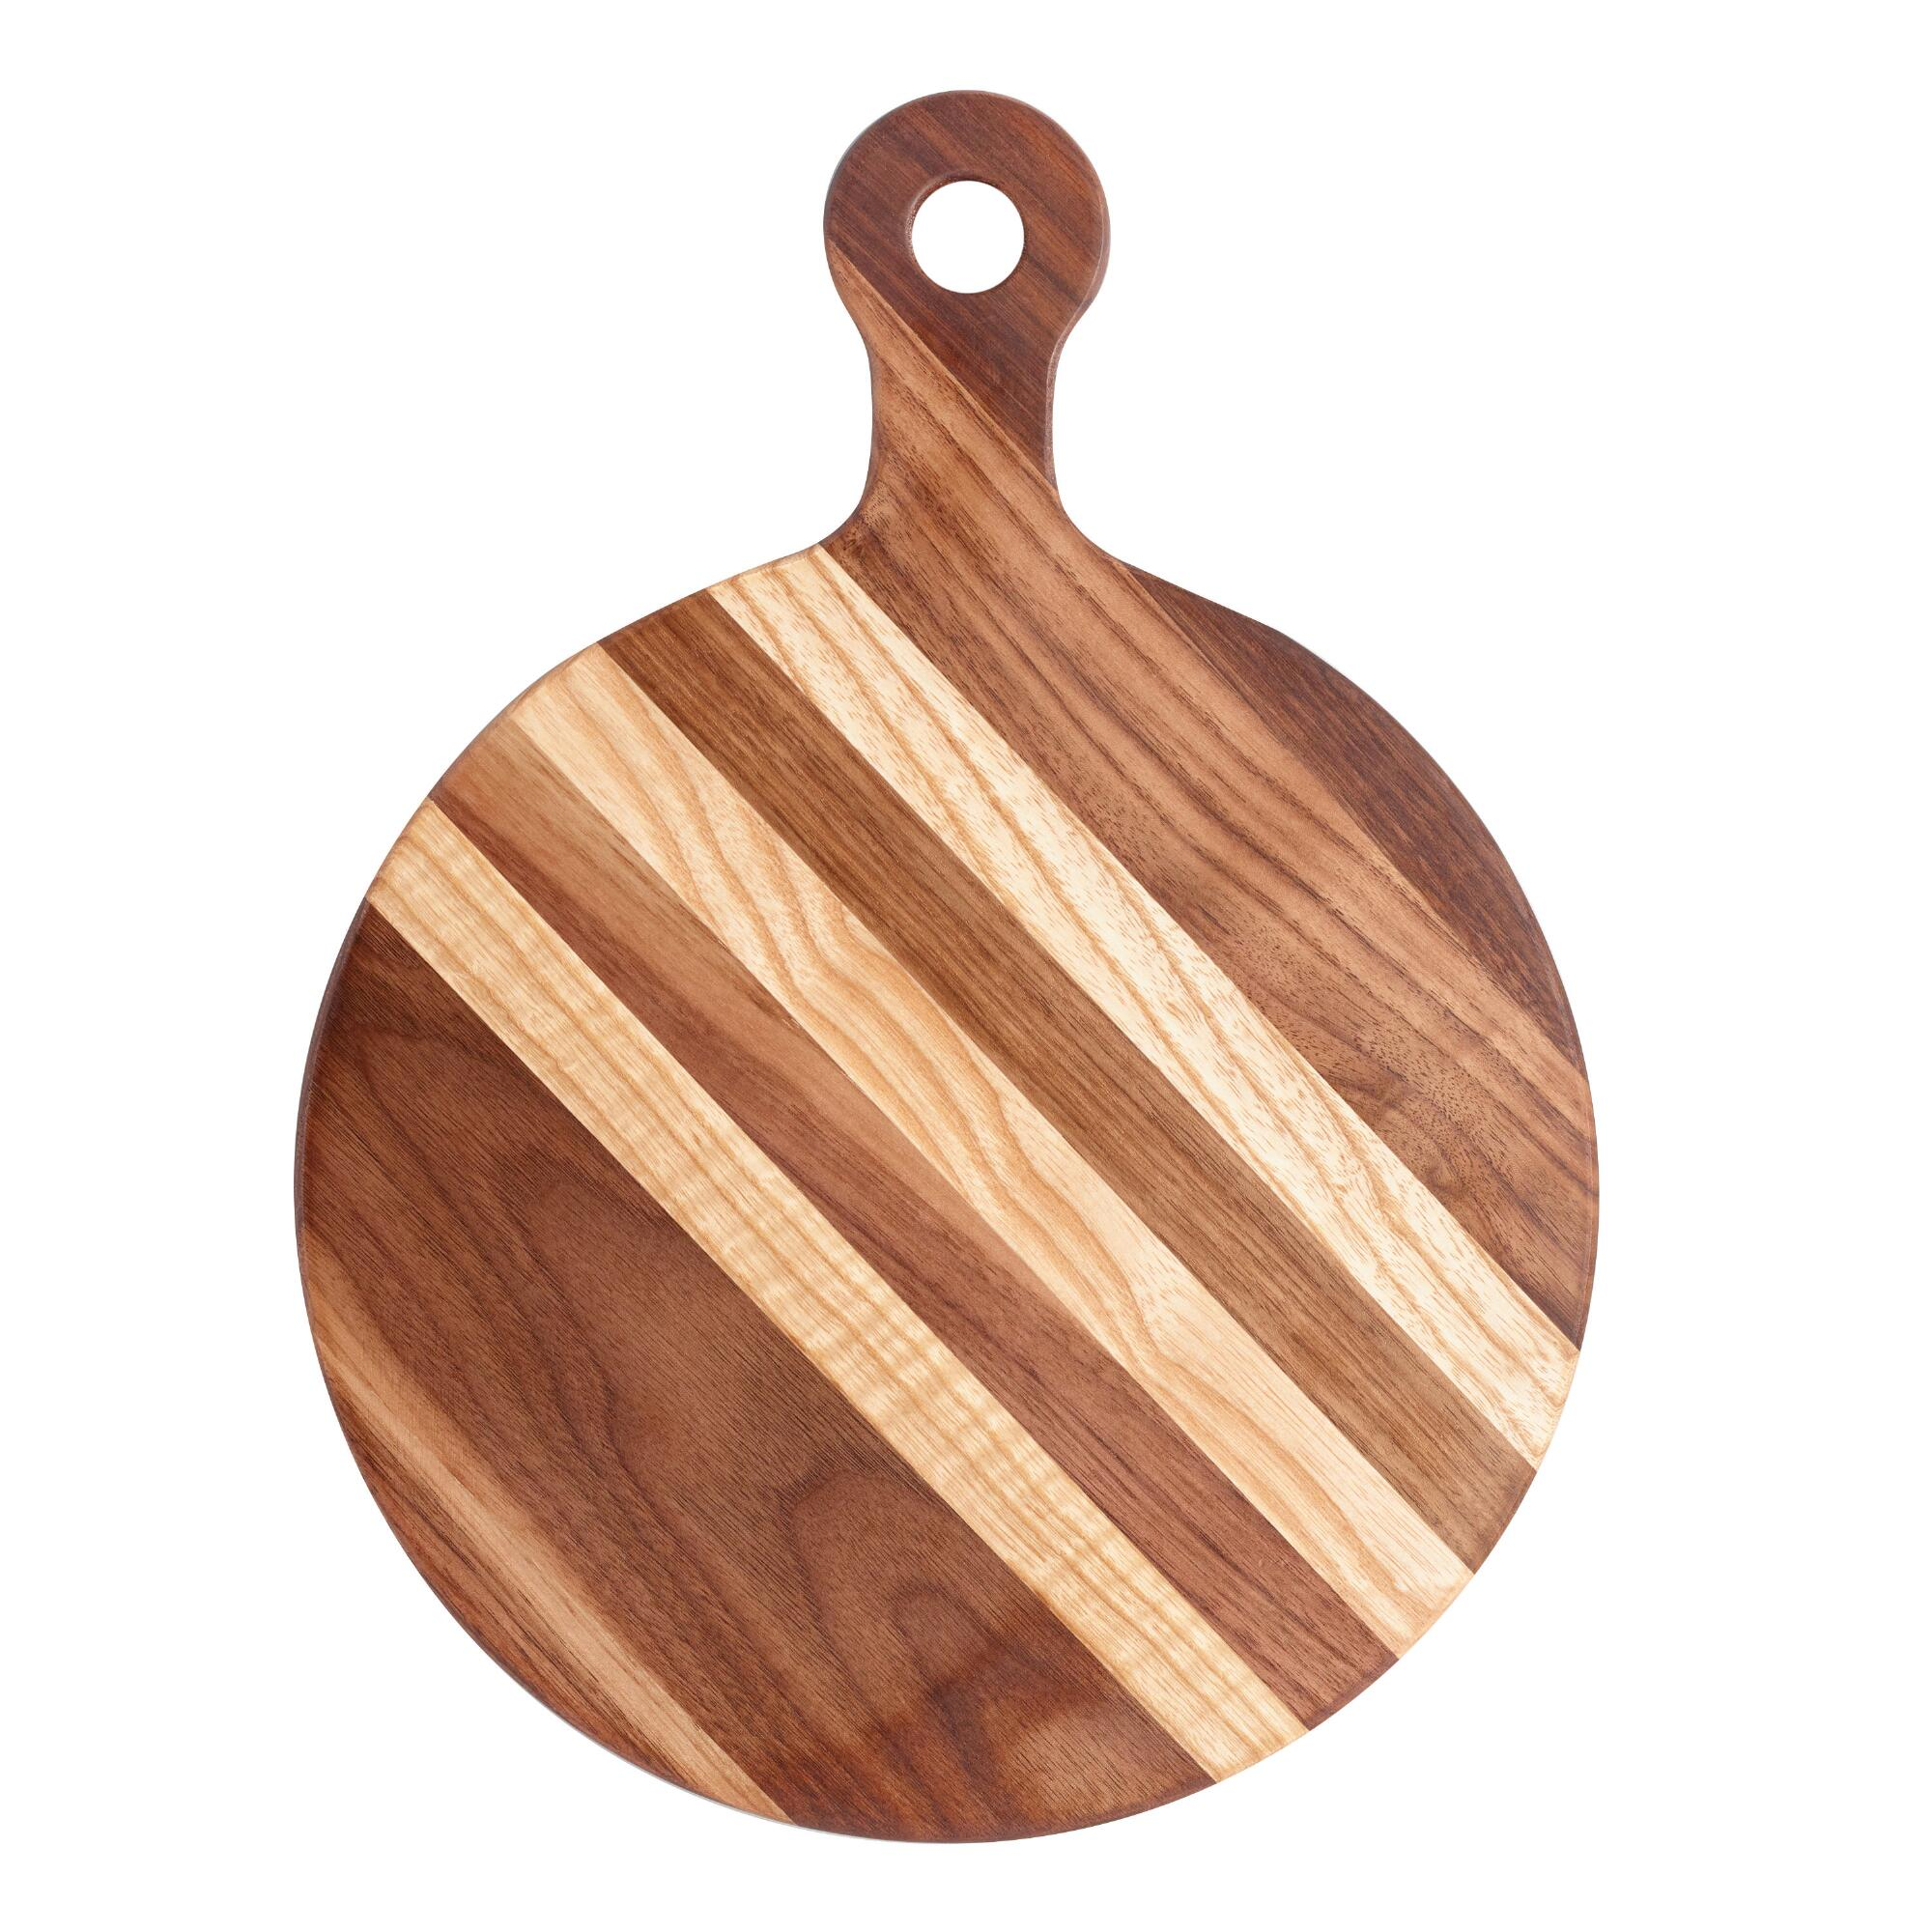 Small Round Walnut Wood Paddle Cutting Board by World Market